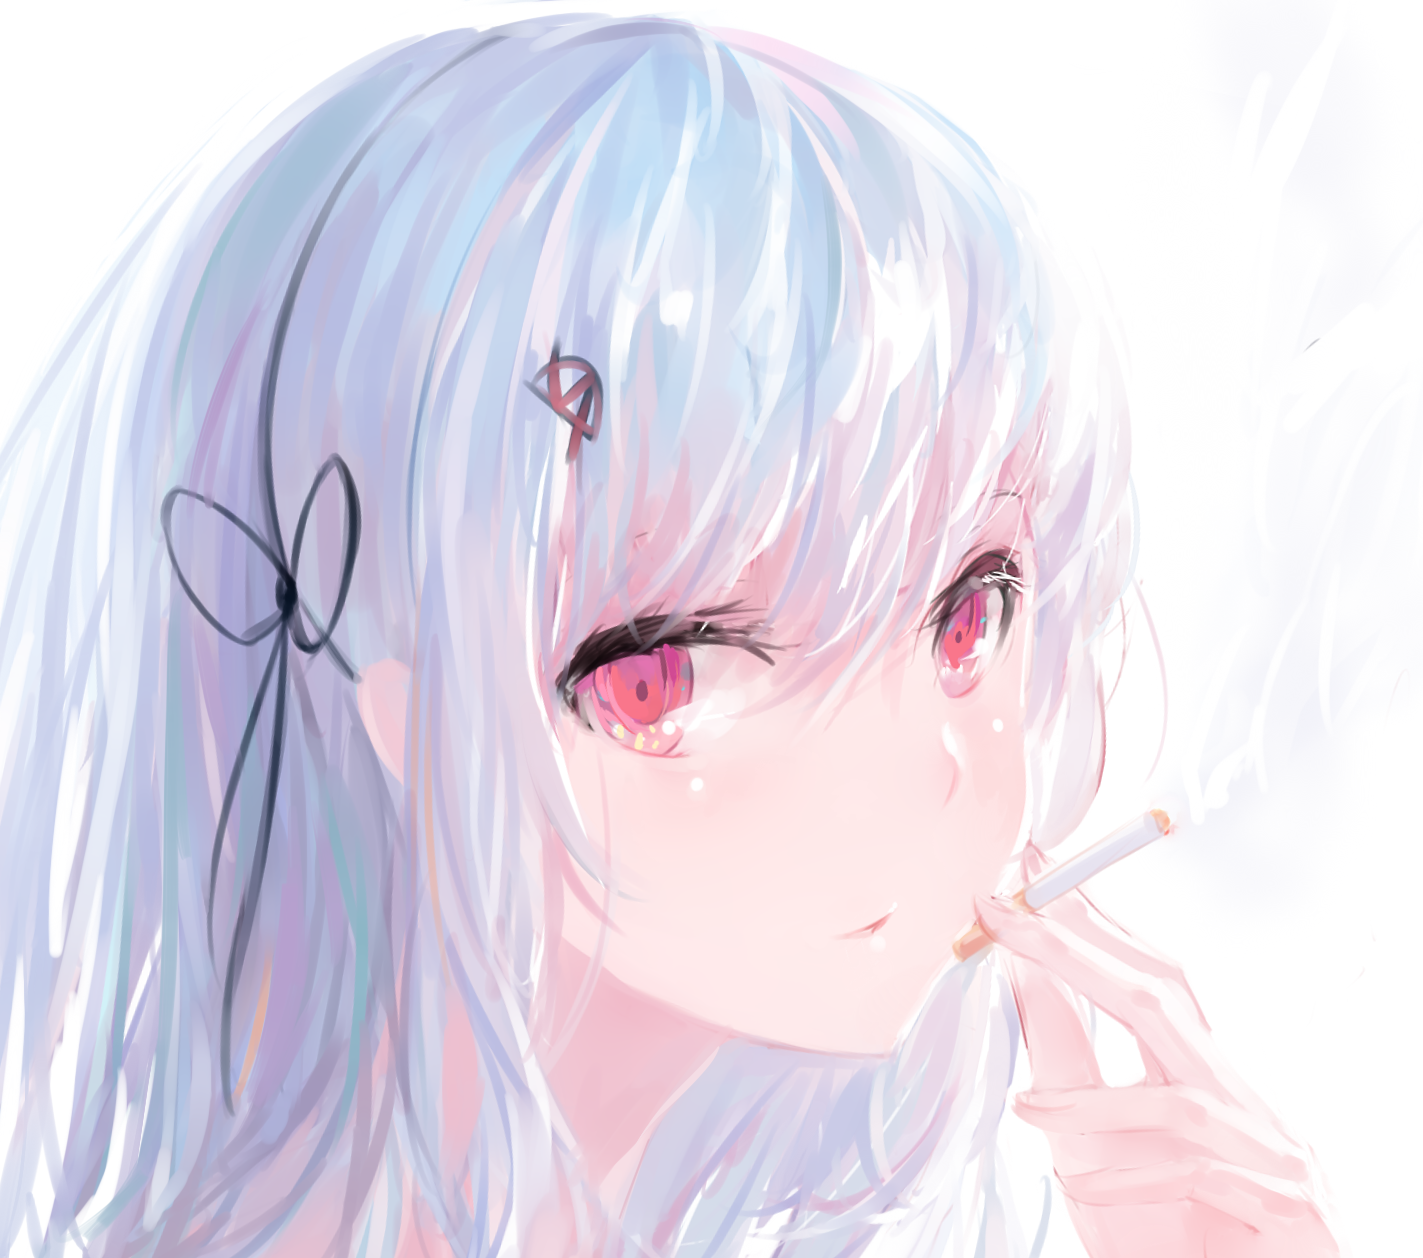 Anime Girl With Silver Hair Uphairstyle